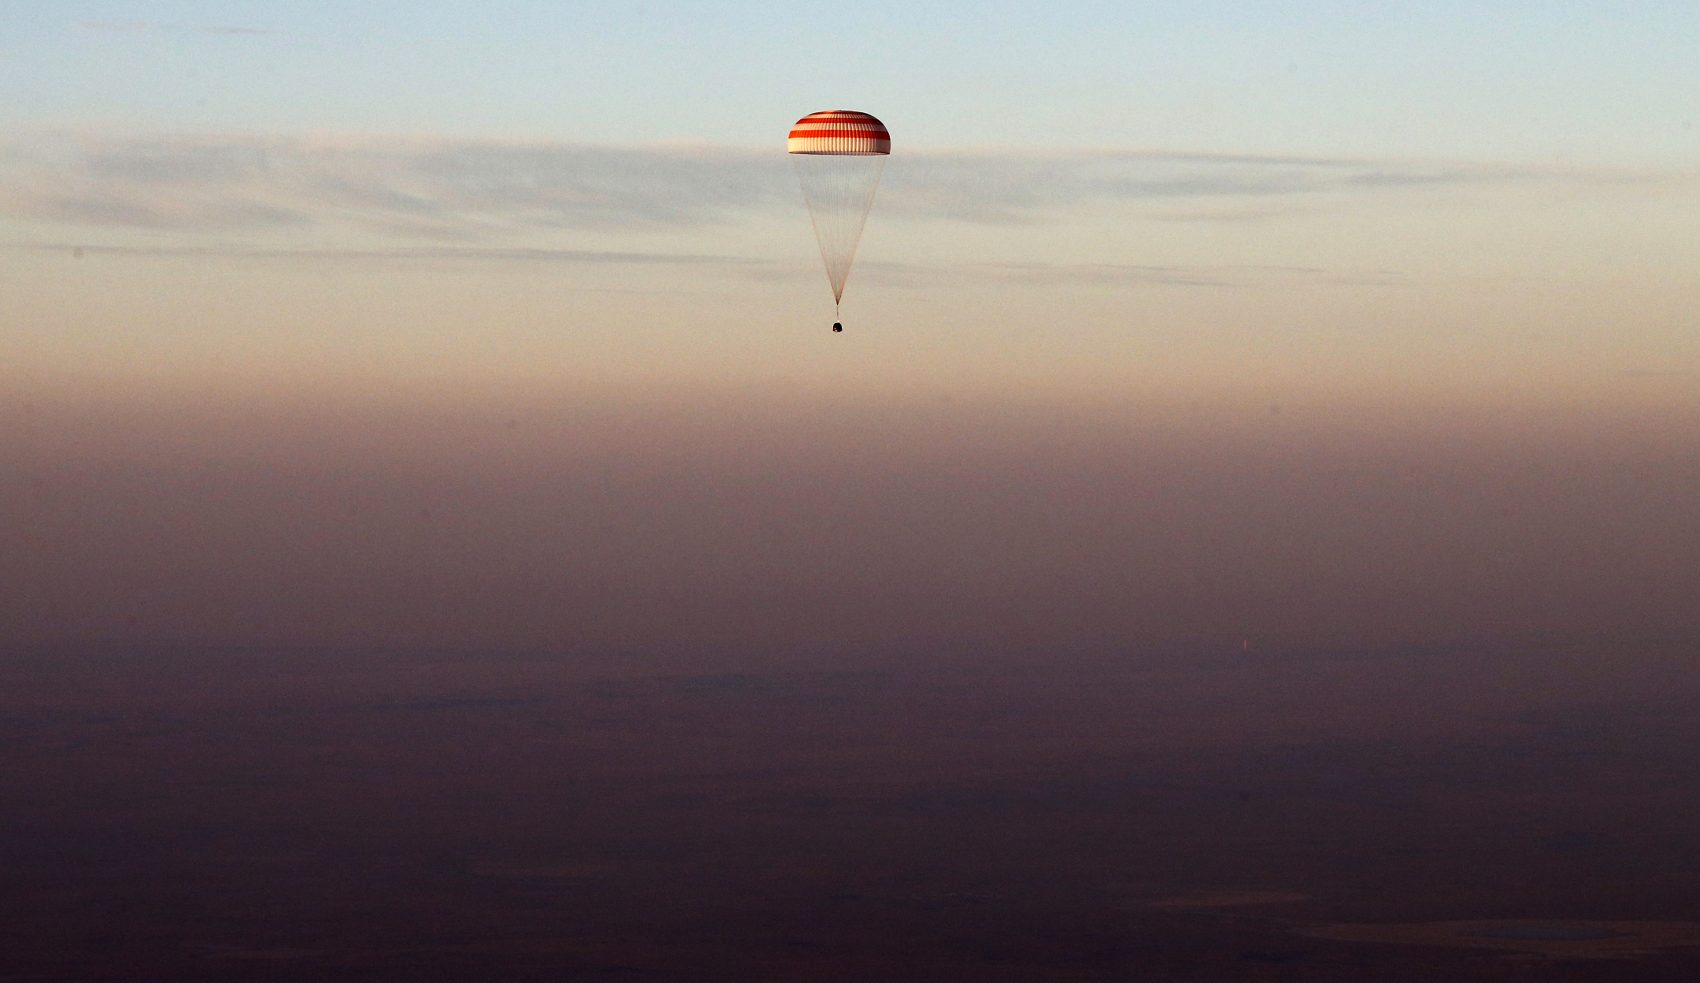 Just go with me here, writes Joelle Renstrom. Suspend your disbelief.  Pictured: The Soyuz TMA-19M capsule carrying NASA's Jeff Williams, and two Russian cosmonauts descends beneath a parachute over Kazakhstan, in Sept., 2016 after a six-month mission aboard the International Space Station. (Maxim Shipenkov/AP)